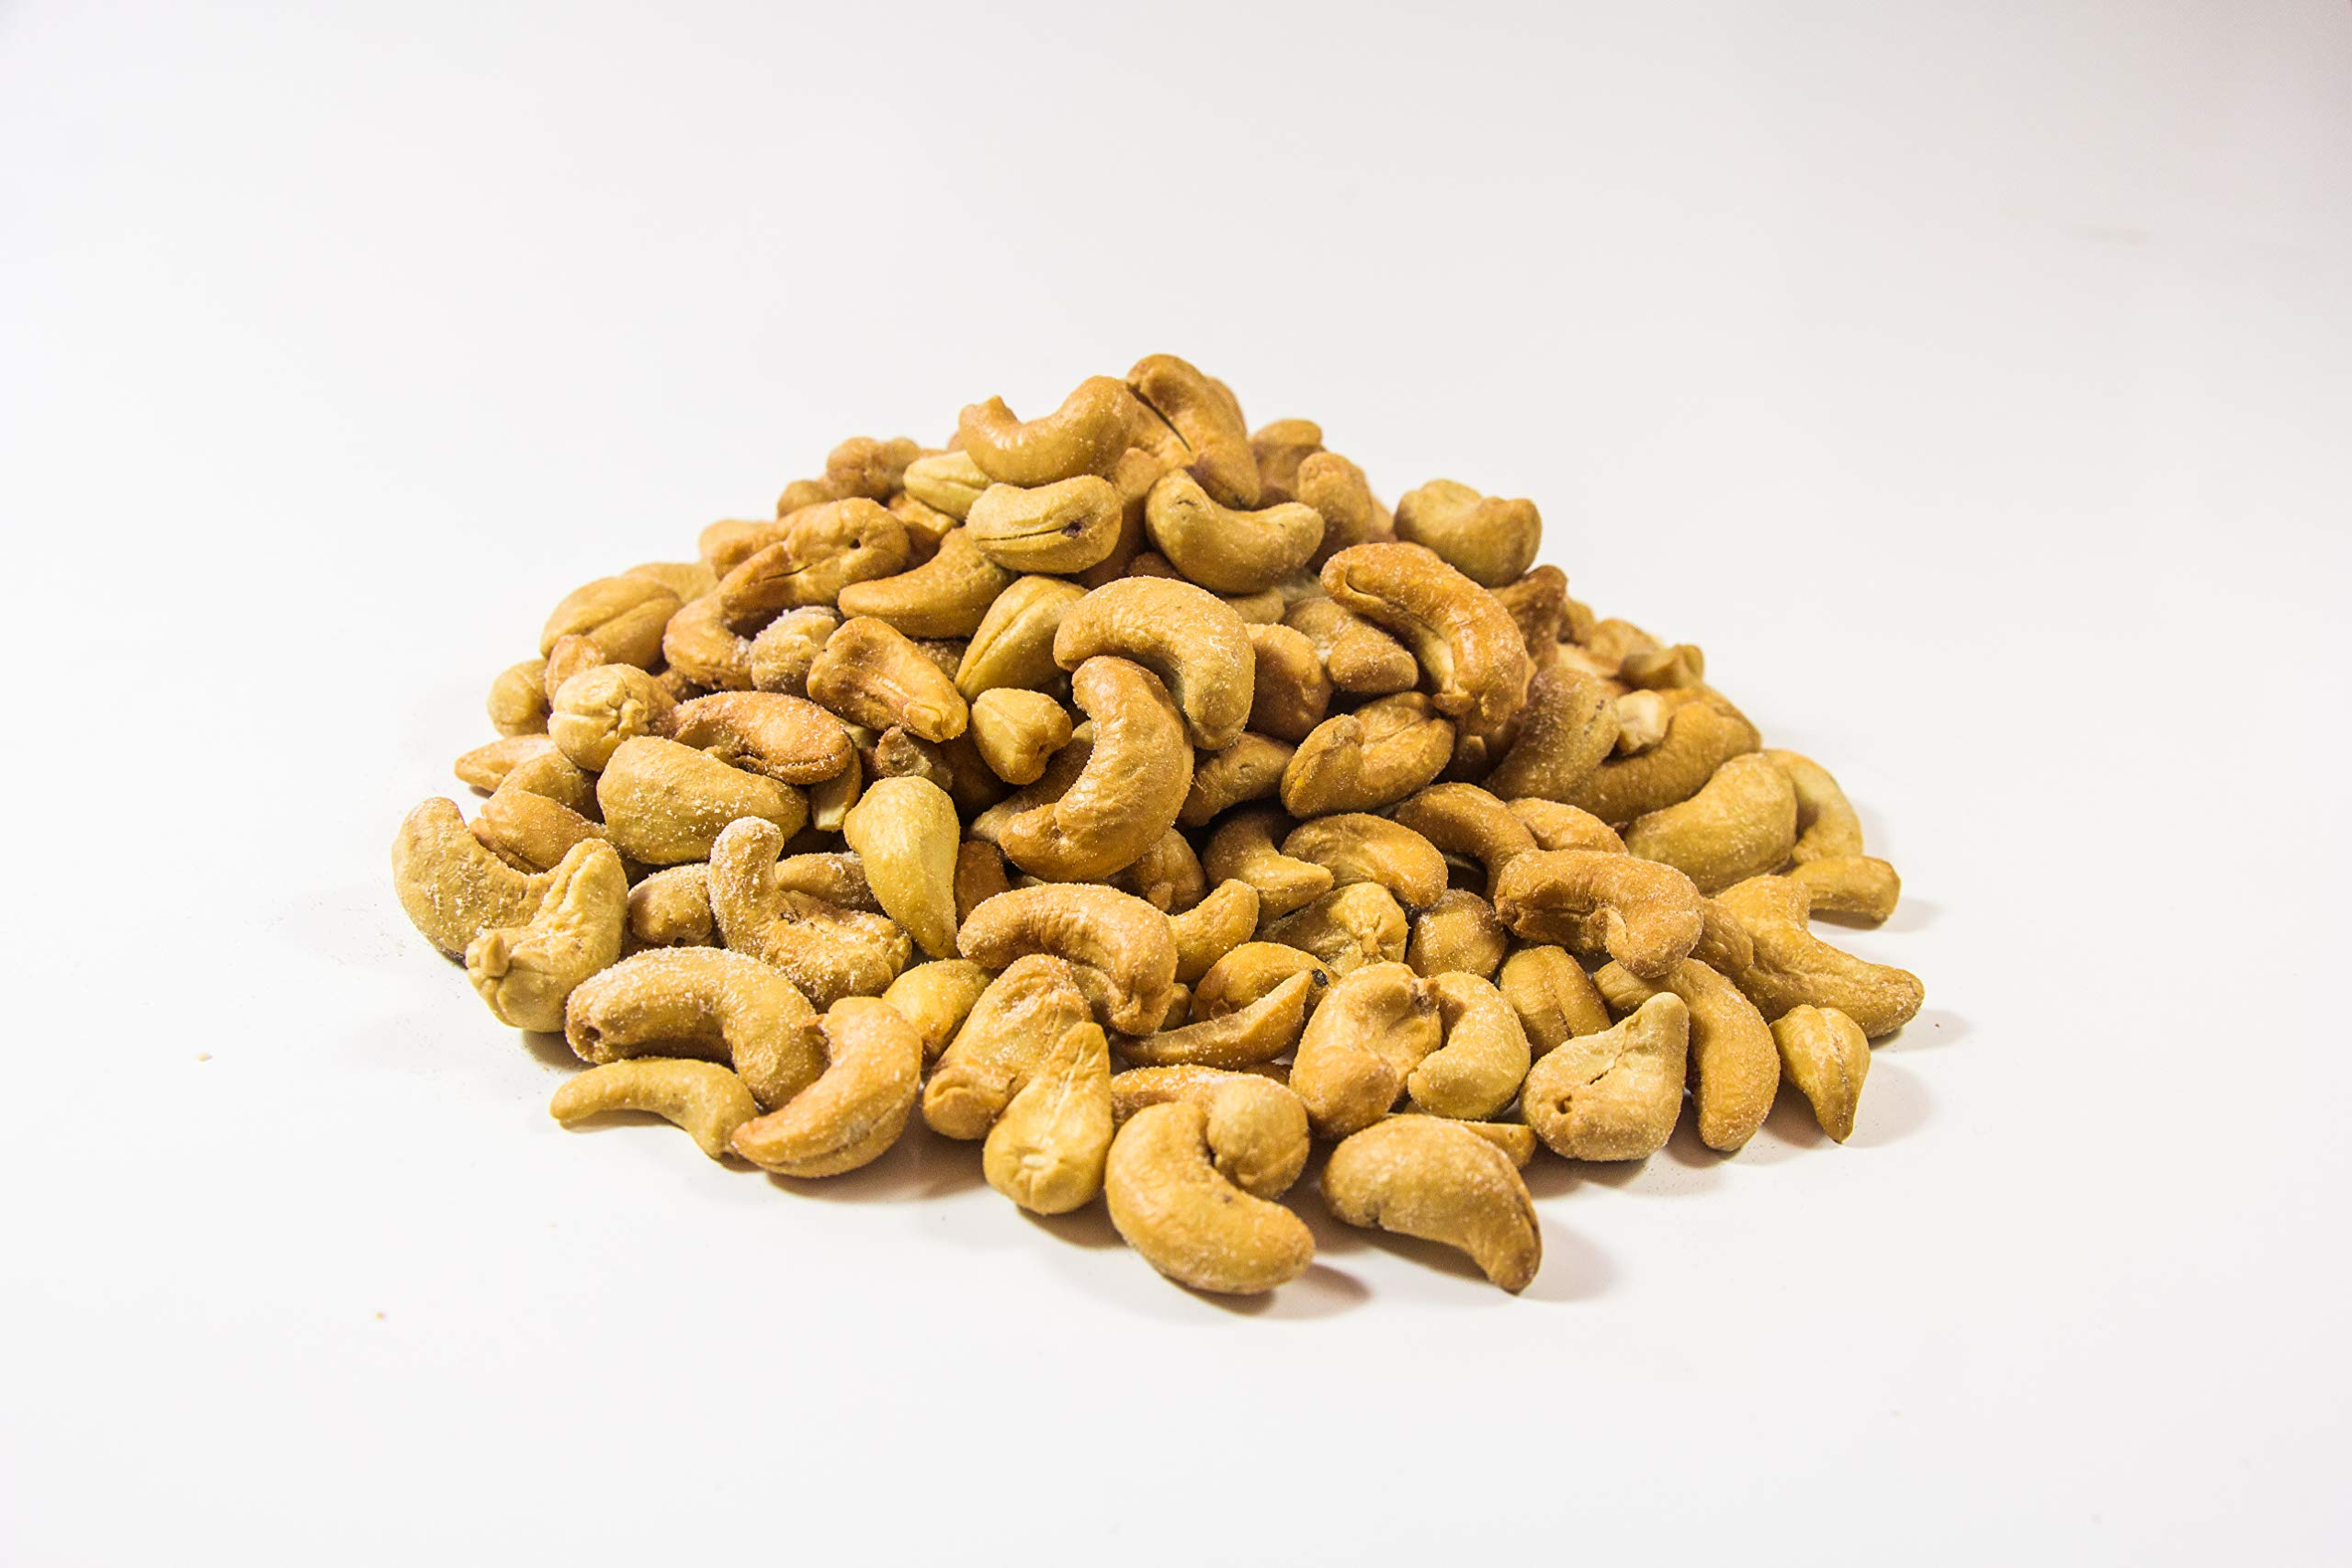 Cashews - Bulk Raw Cashews 10 Pound Value Box - Freshest And Highest Quality Nuts From US Based Farmer Market - Quality nuts for homes, restaurants, and bakeries. (10 LBS)